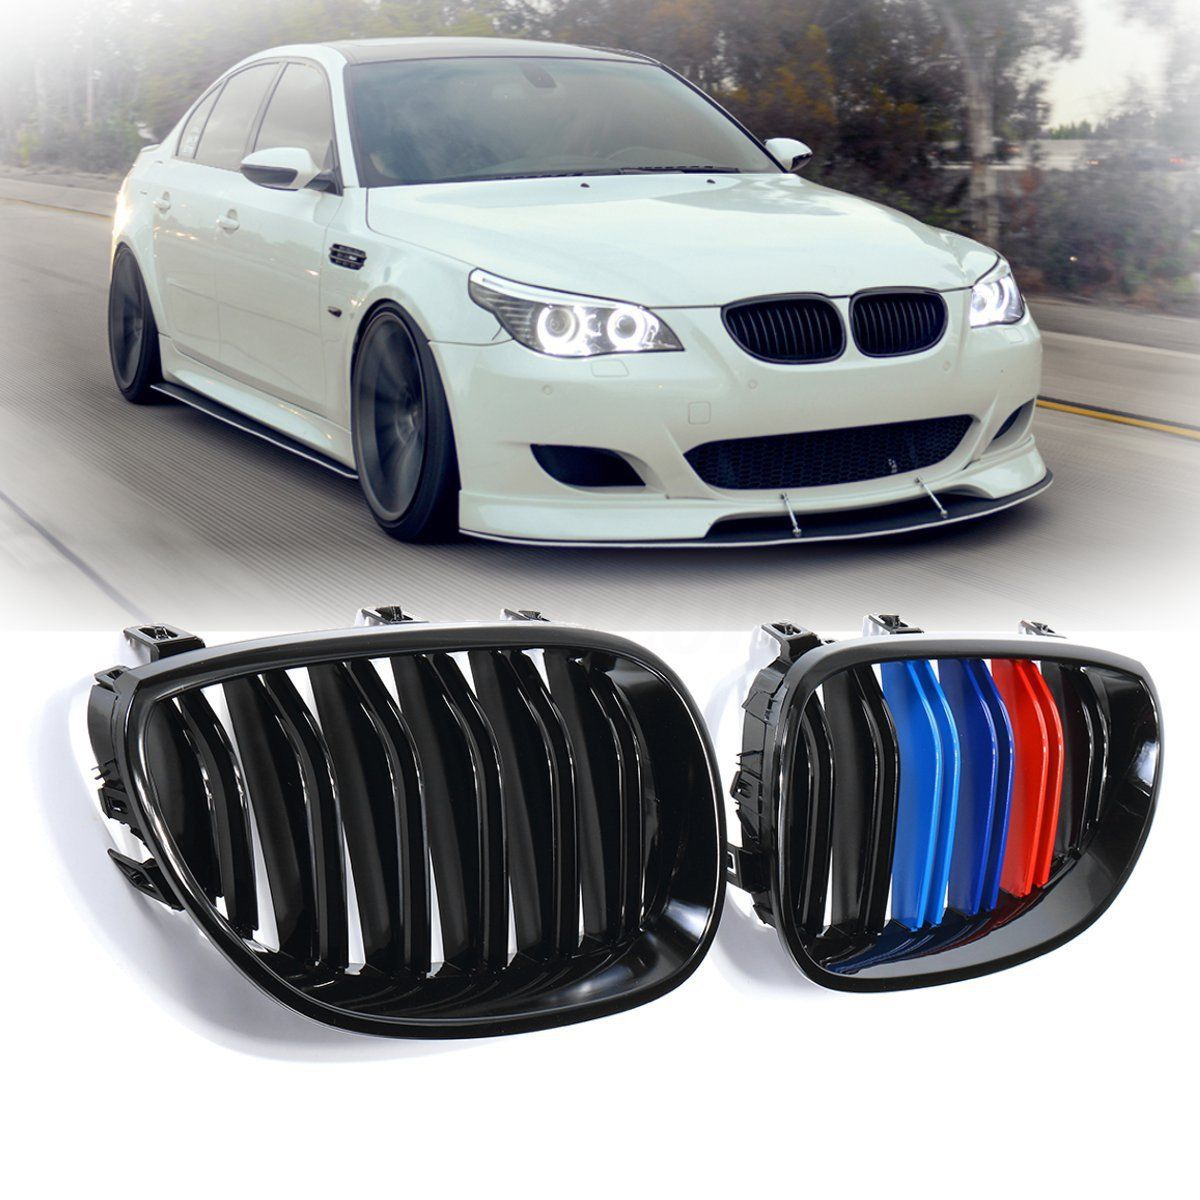 For <font><b>BMW</b></font> <font><b>5</b></font> <font><b>series</b></font> <font><b>E60</b></font> E61 2003 2004 2005 2006 2007 2008 2009 Car Glossy Black M-Color Red Blue Green Color Front Kidney Grilles image